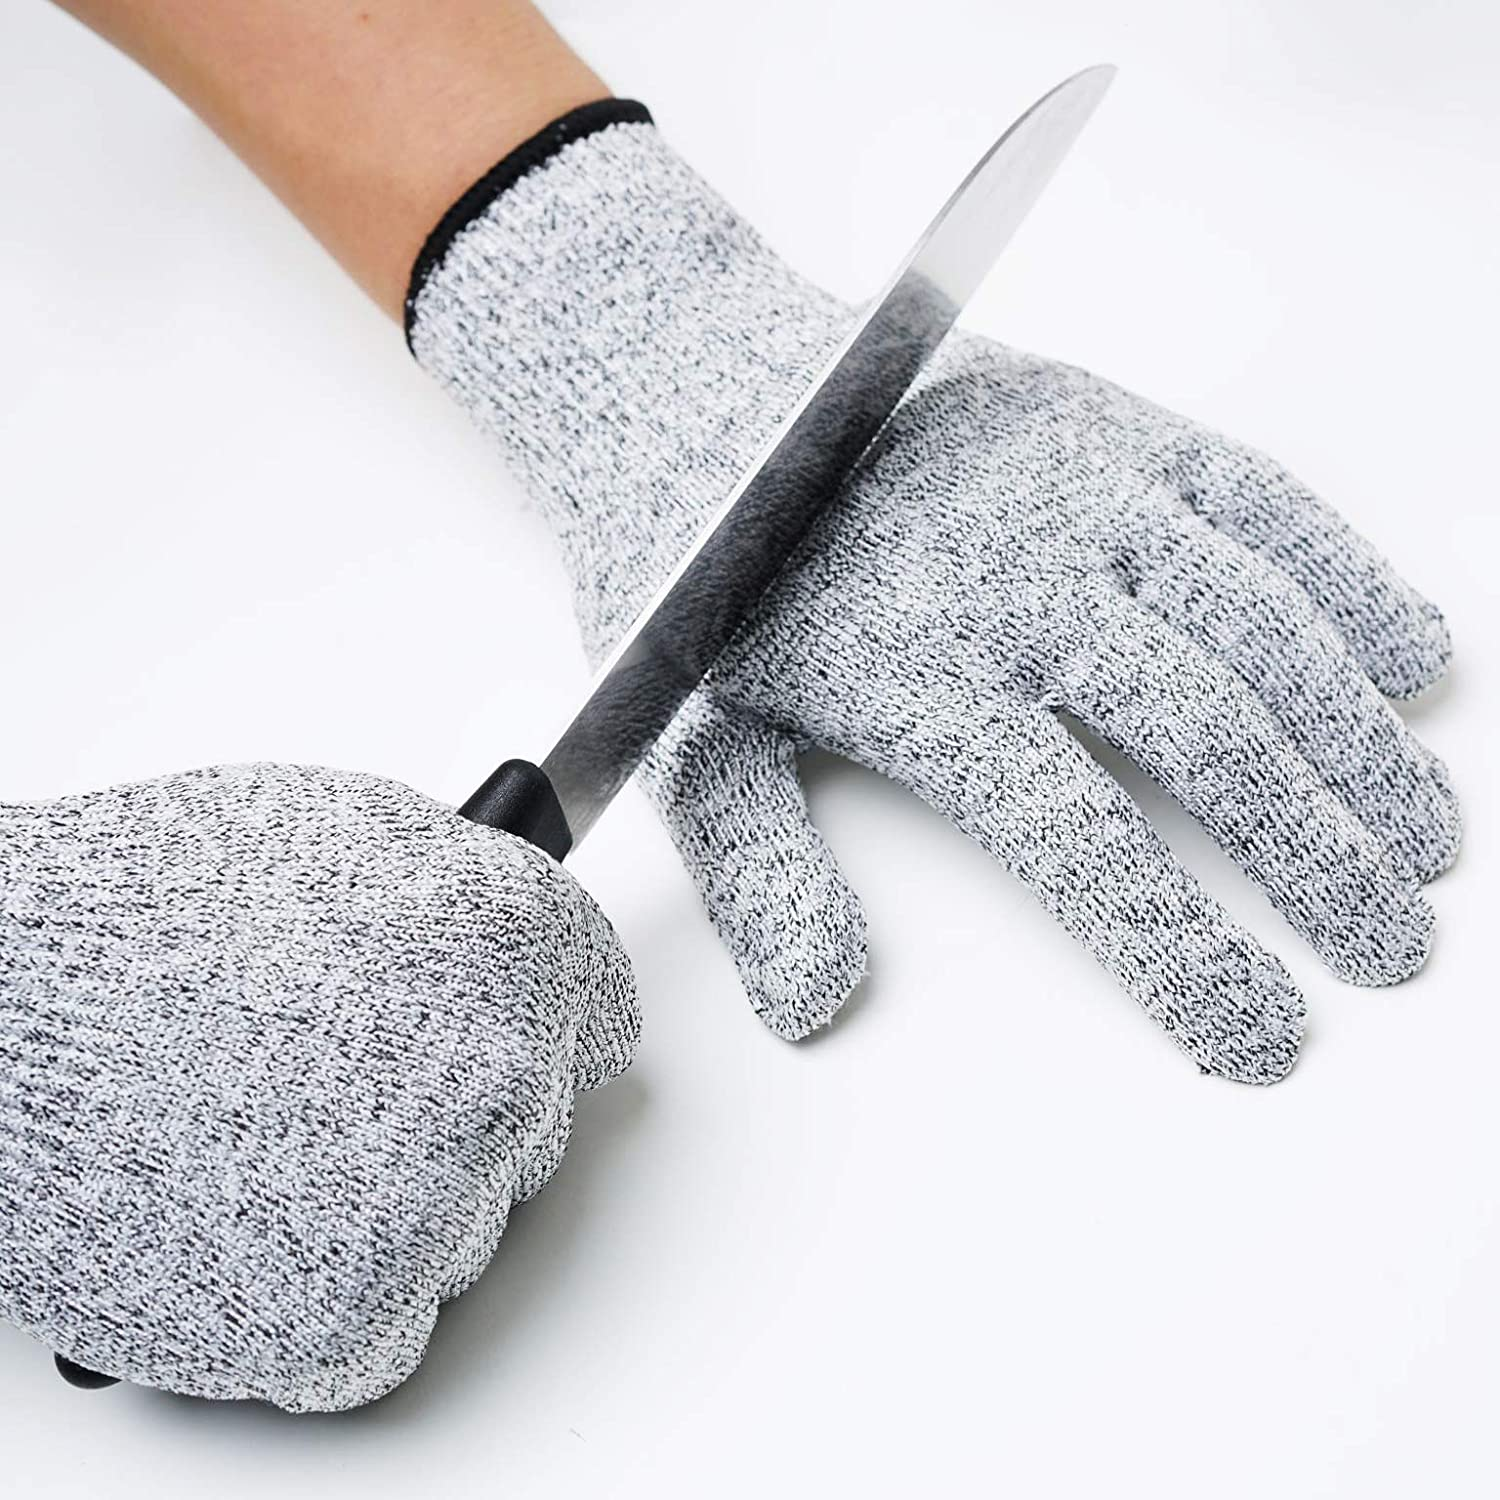 Cut Resistant Gloves Food Grade Level 5 Protection,Kitchen Meat Cutting,Oyester shucking,Gardon wood carving (Extra Large)